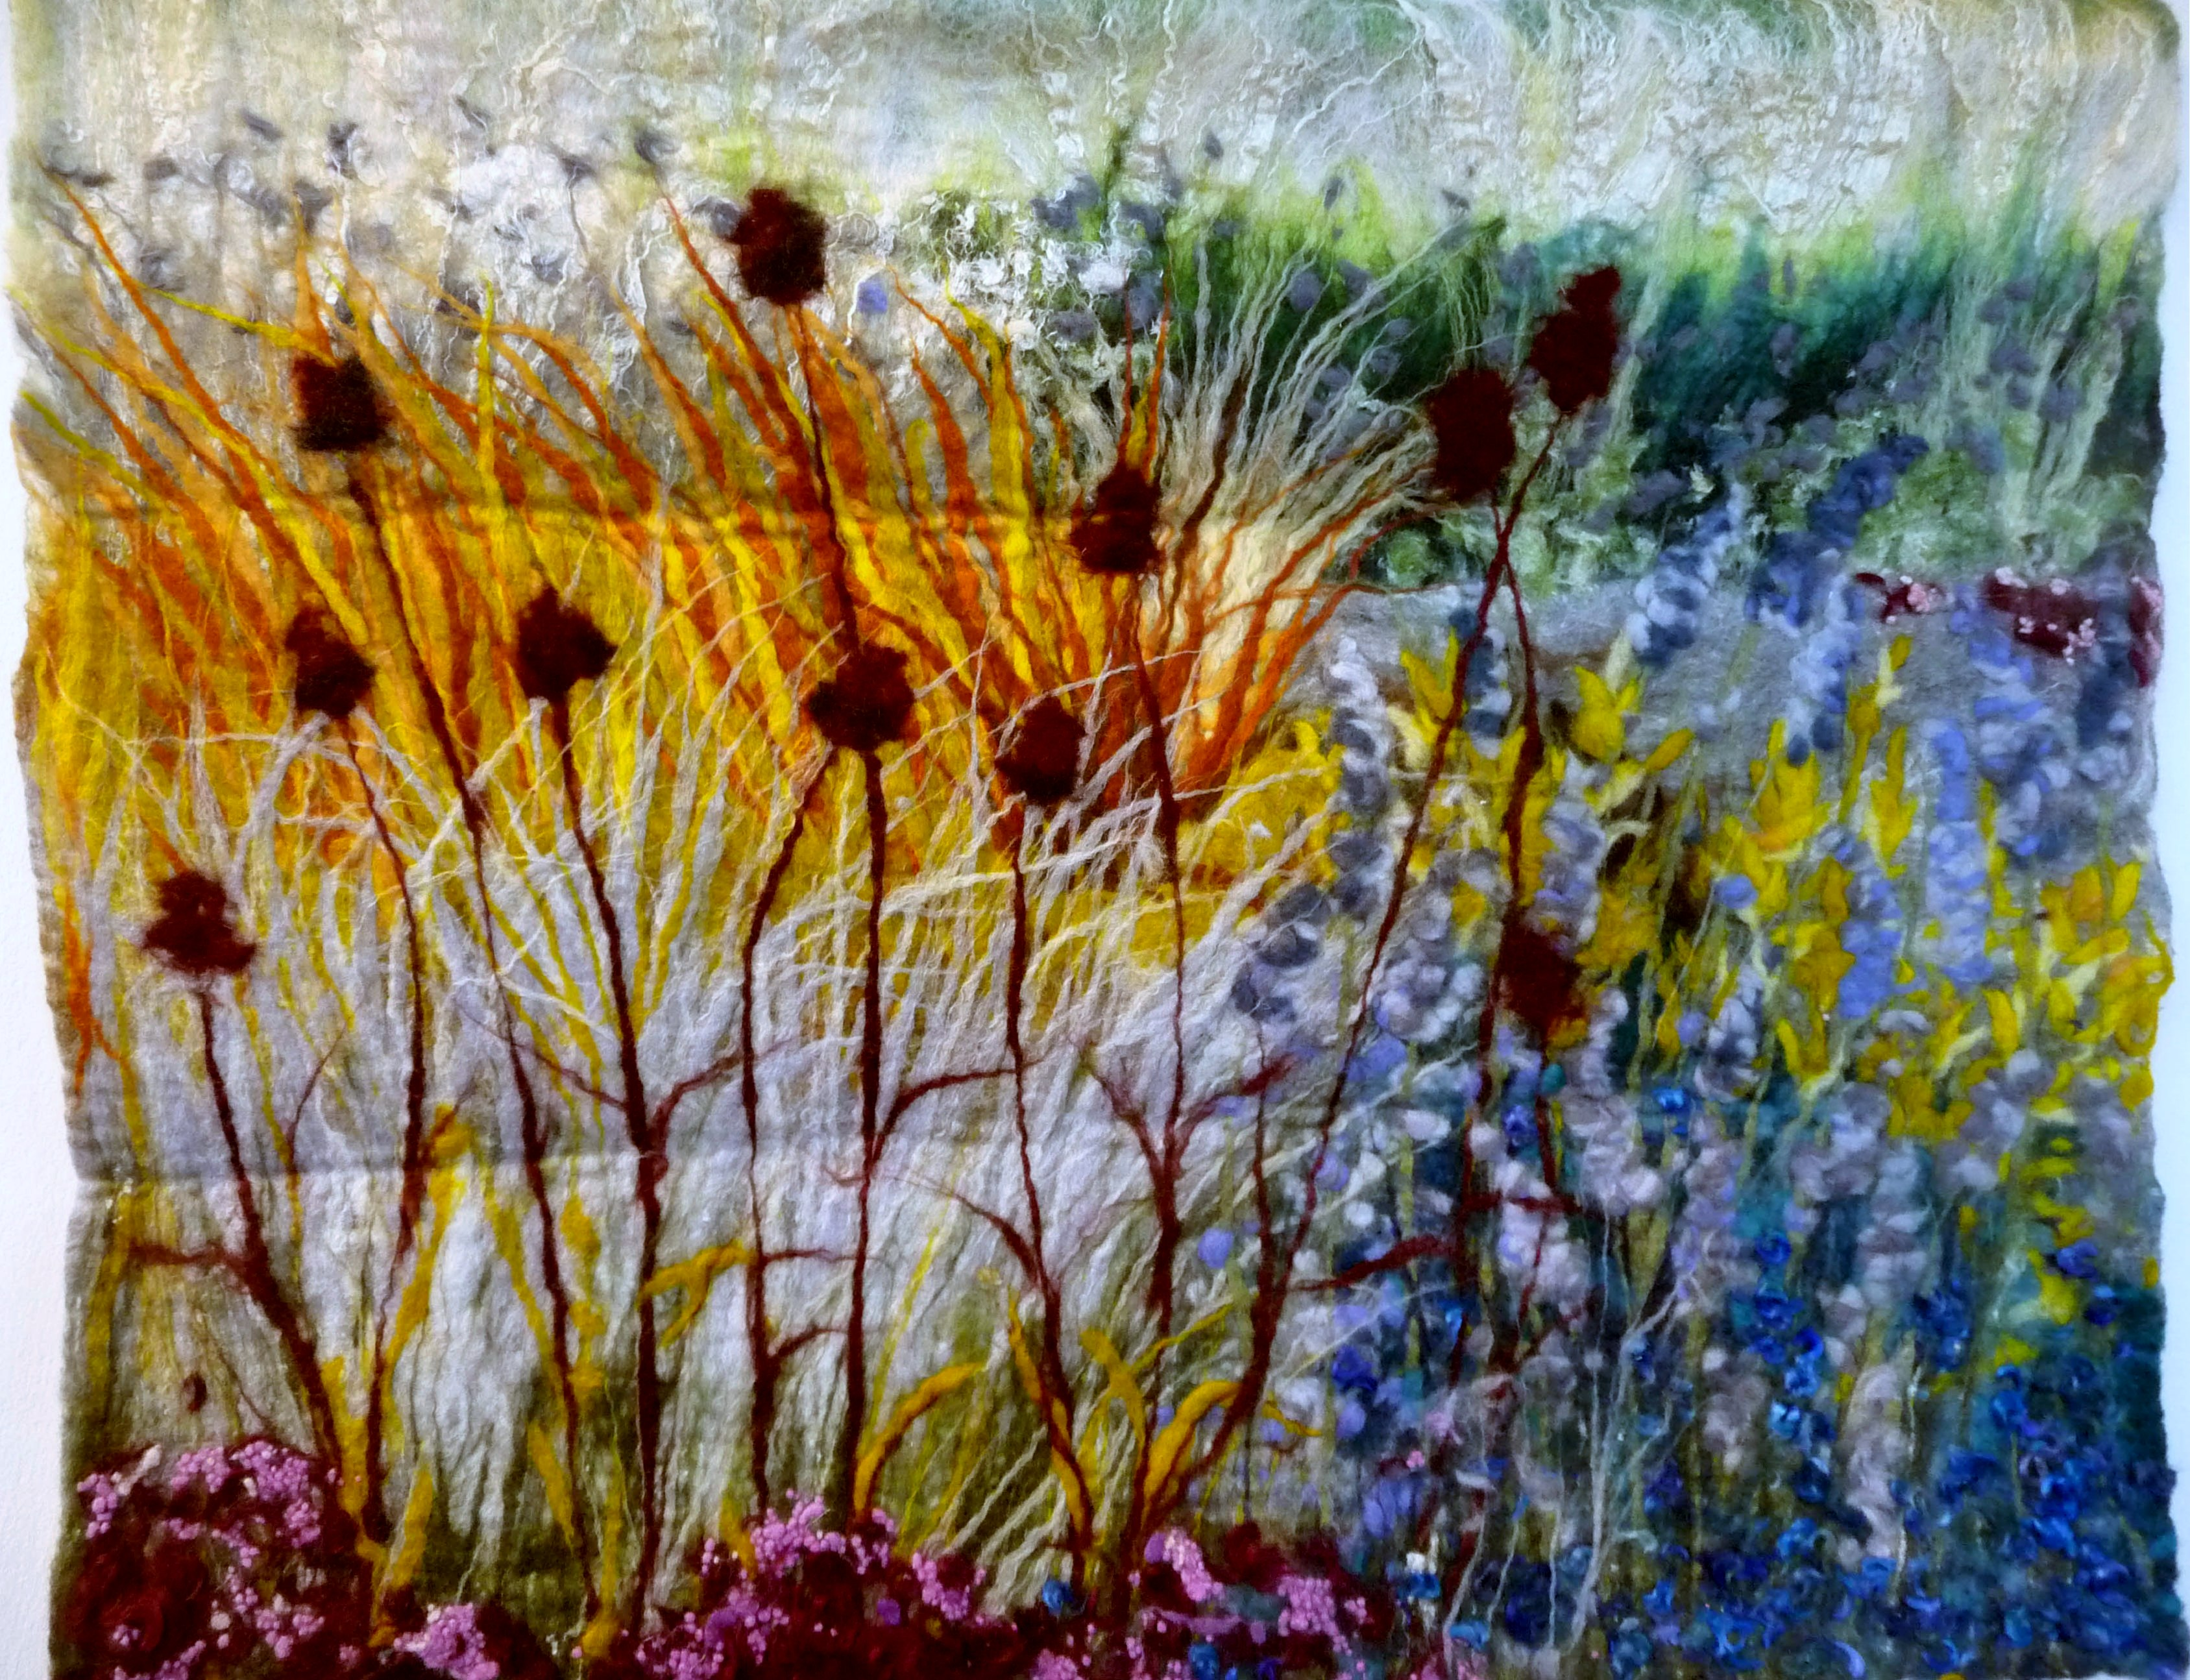 entry to Capability Brown Festival with Embroiderers' Guild, FESTIVAL OF GRASSES, SCAMPTSON WALLED GARDEN by Liz Emery